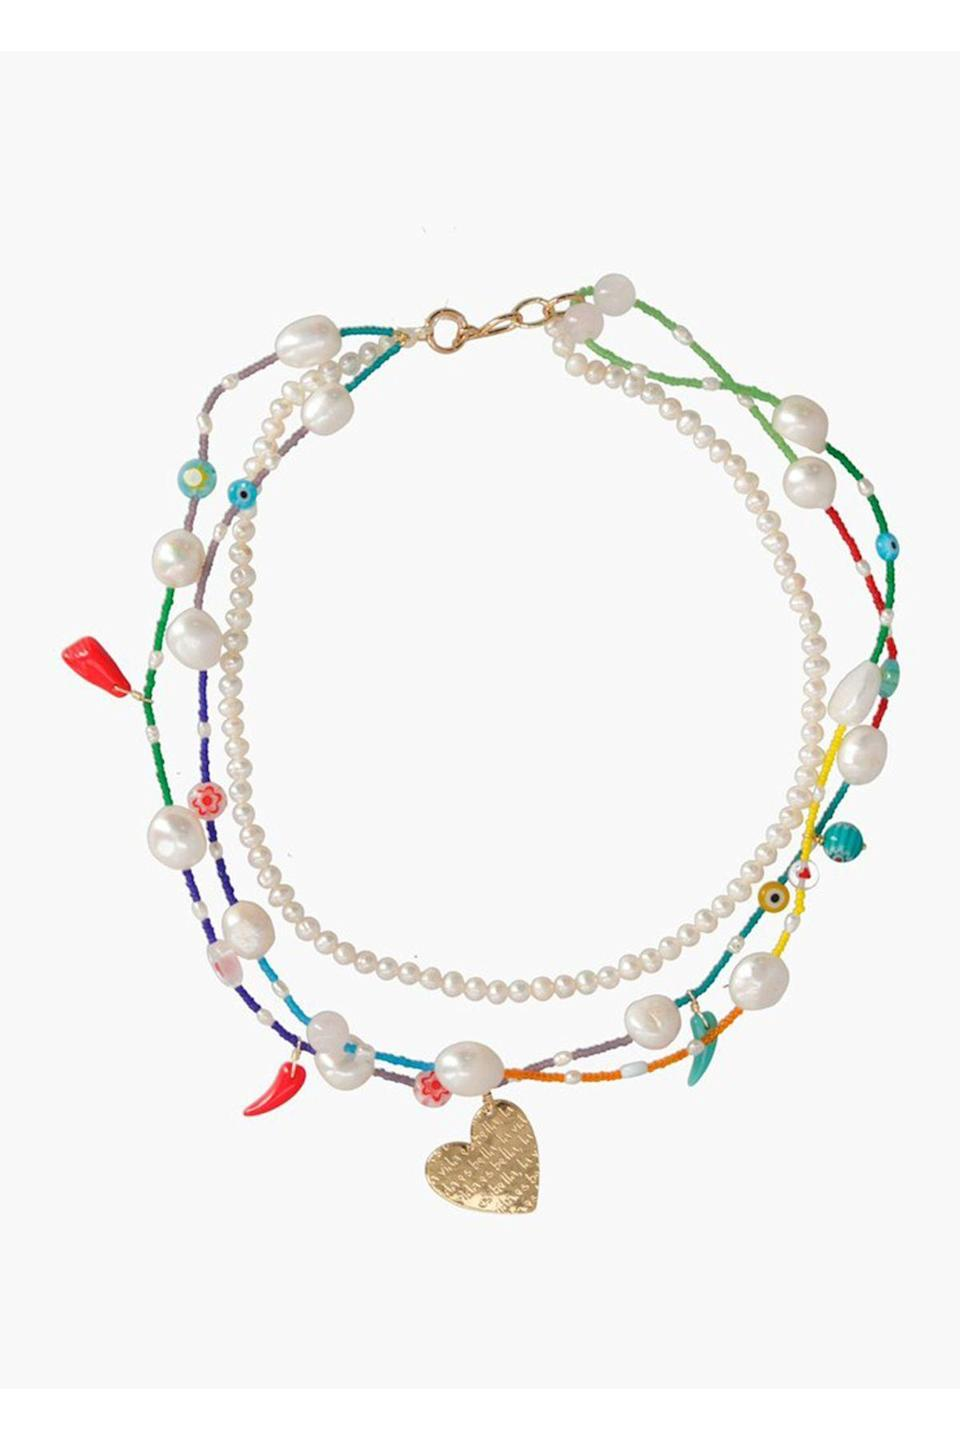 """<p><strong>Mercedes Salazar</strong></p><p>mercedessalazar.com</p><p><strong>$77.00</strong></p><p><a href=""""https://int.mercedessalazar.com/collections/necklaces/products/colorful-life-necklace"""" rel=""""nofollow noopener"""" target=""""_blank"""" data-ylk=""""slk:Shop Now"""" class=""""link rapid-noclick-resp"""">Shop Now</a></p><p>This necklace by Mercedes Salazar is handmade by master artisans in Bogotá, Colombia. Consider it the layered look will complete a casual summer outfit. </p>"""